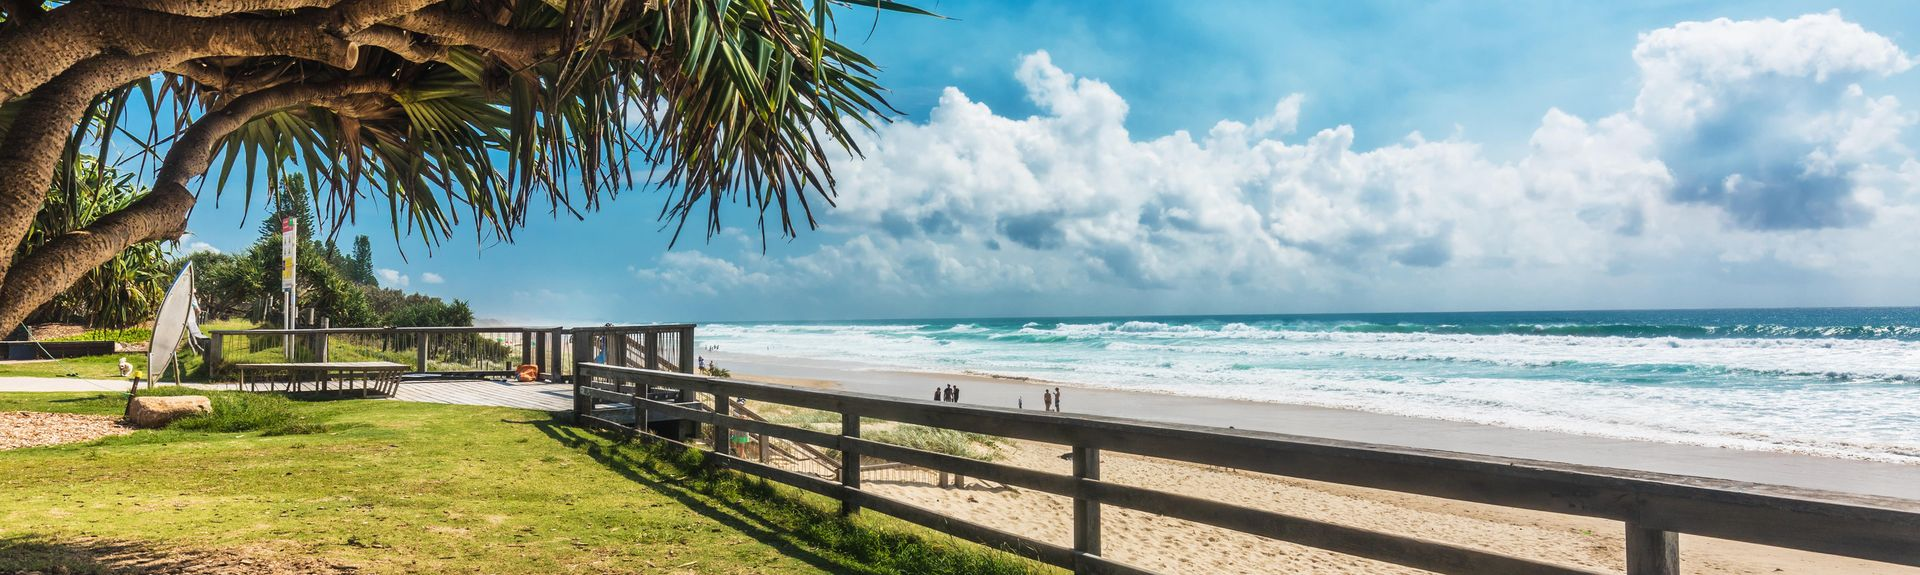 Coolum Beach, Sunshine Coast, Sunshine Coast Region, Queensland, Australia